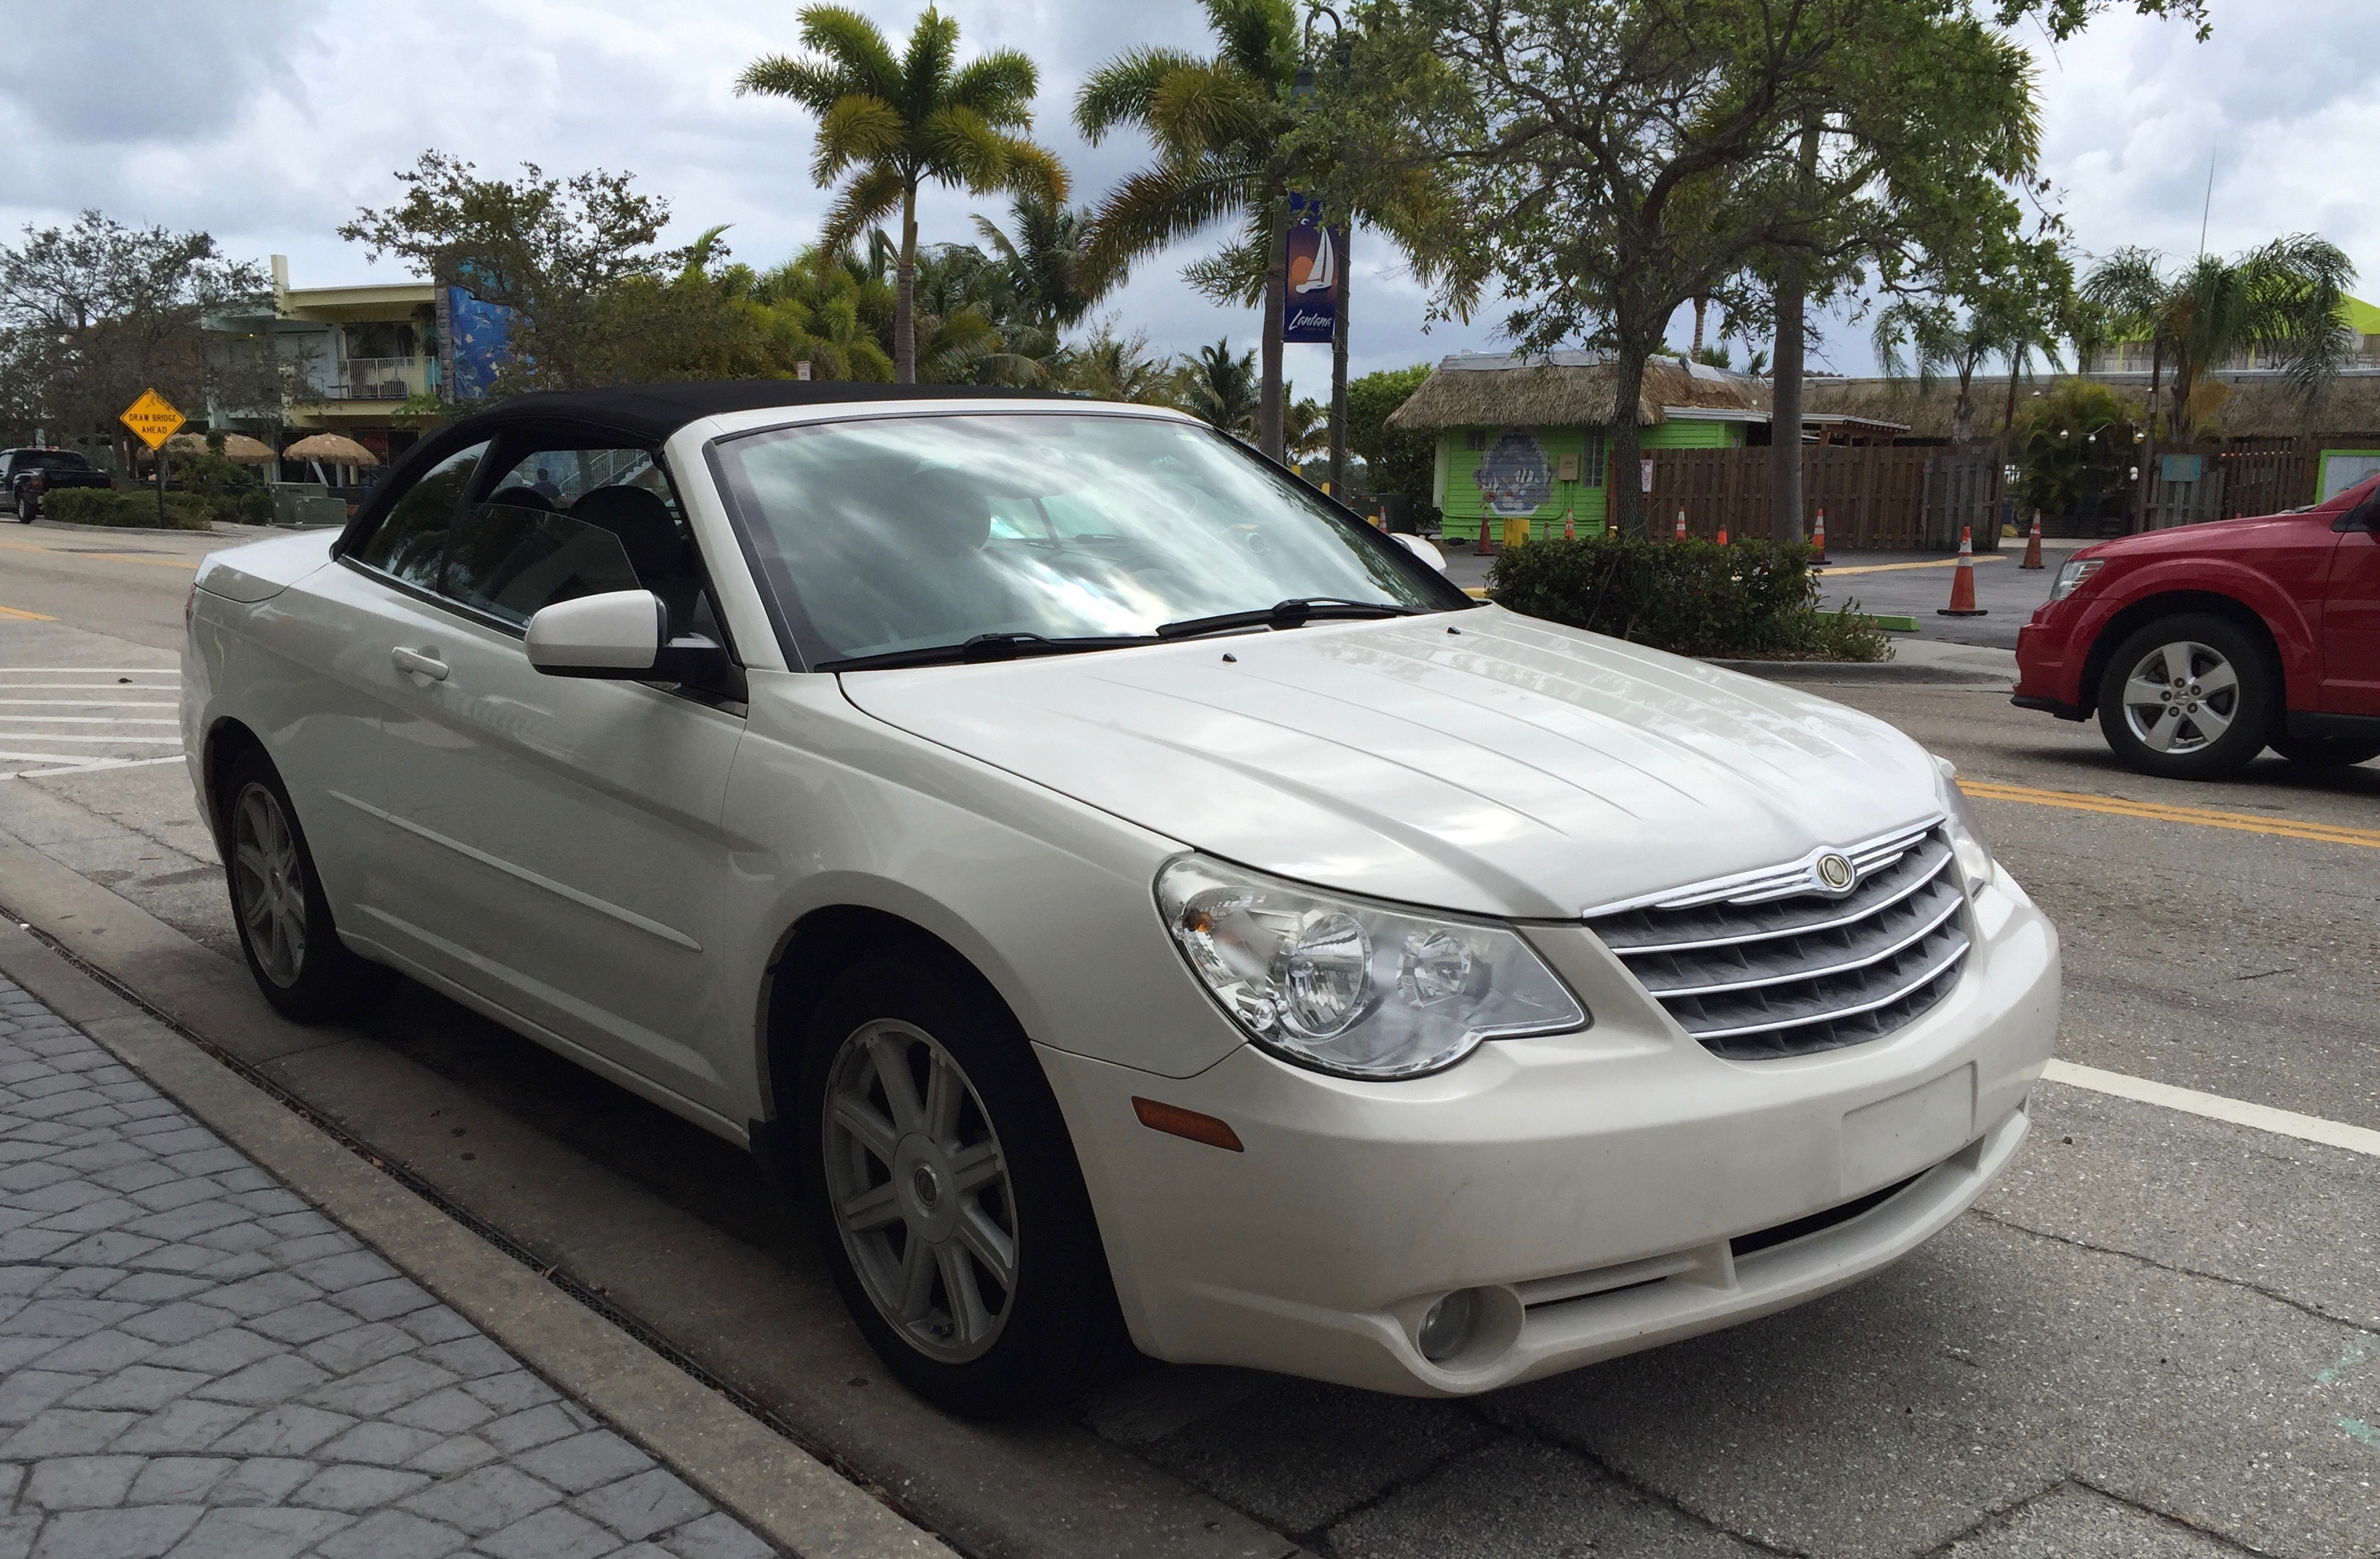 File Chrysler Sebring Convertible Third Generation Js White Lantana 1of2 Jpg